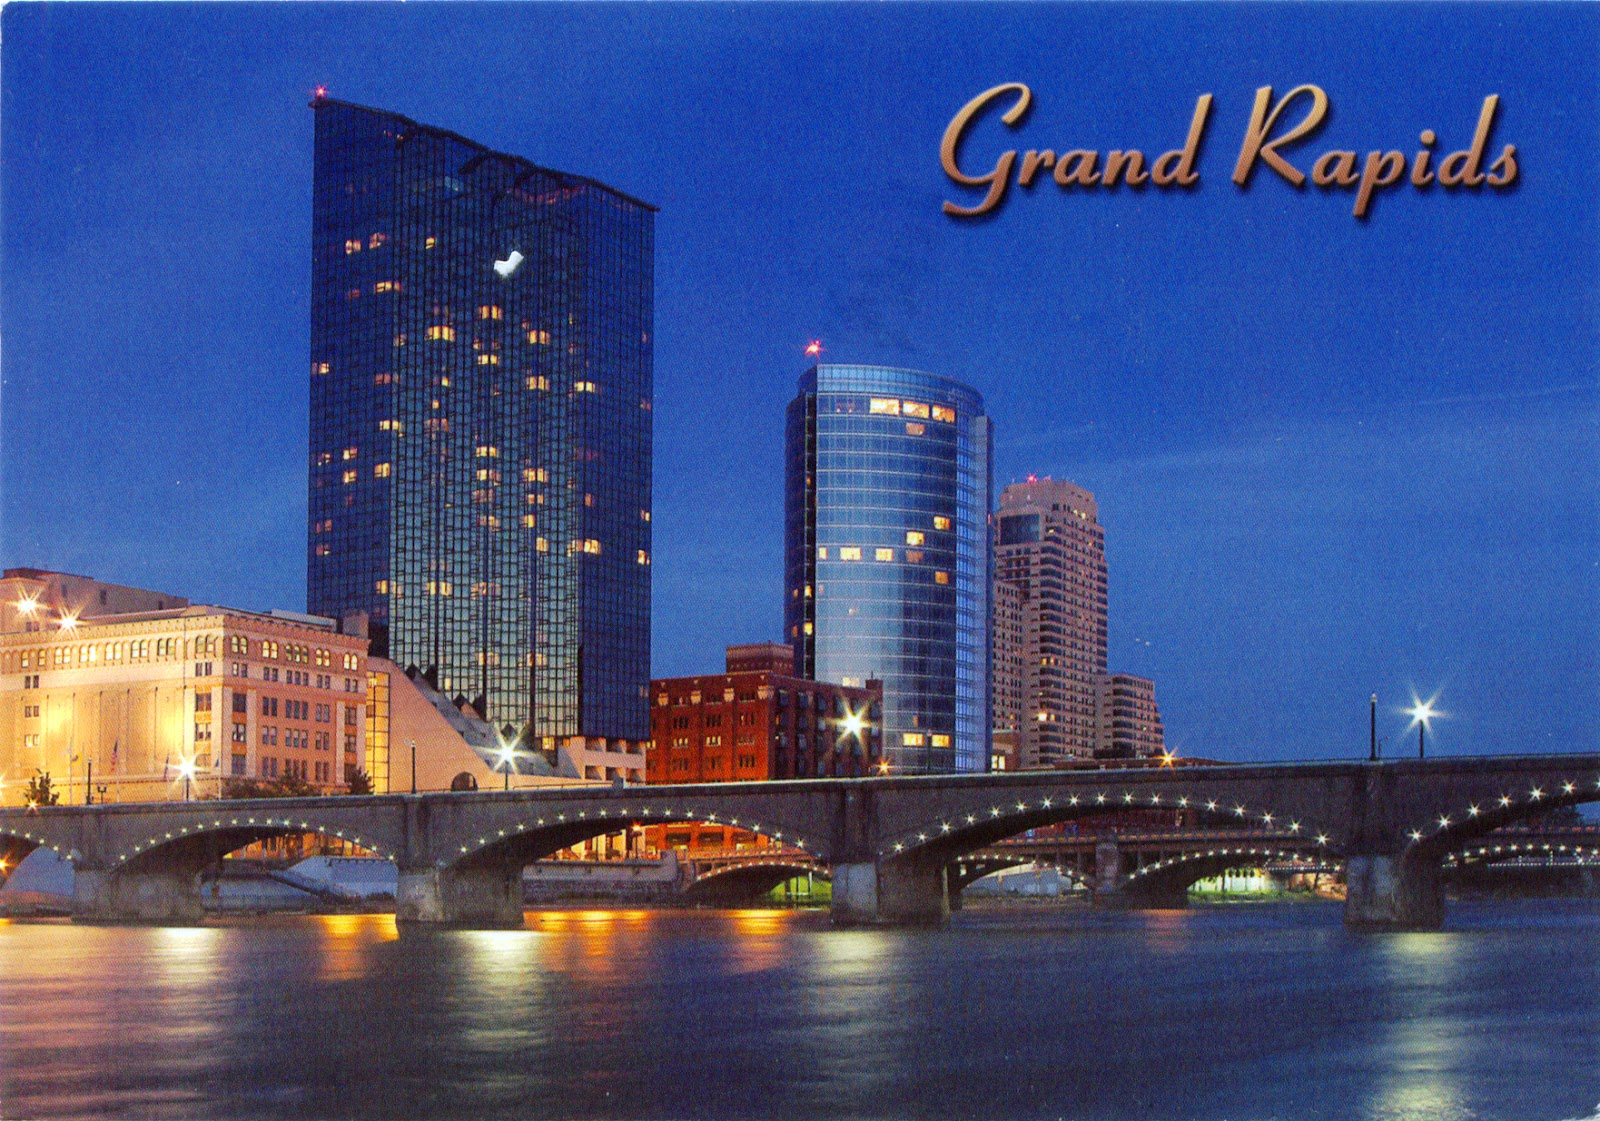 Grand Rapids (MI) United States  city photos : Grand Rapids City